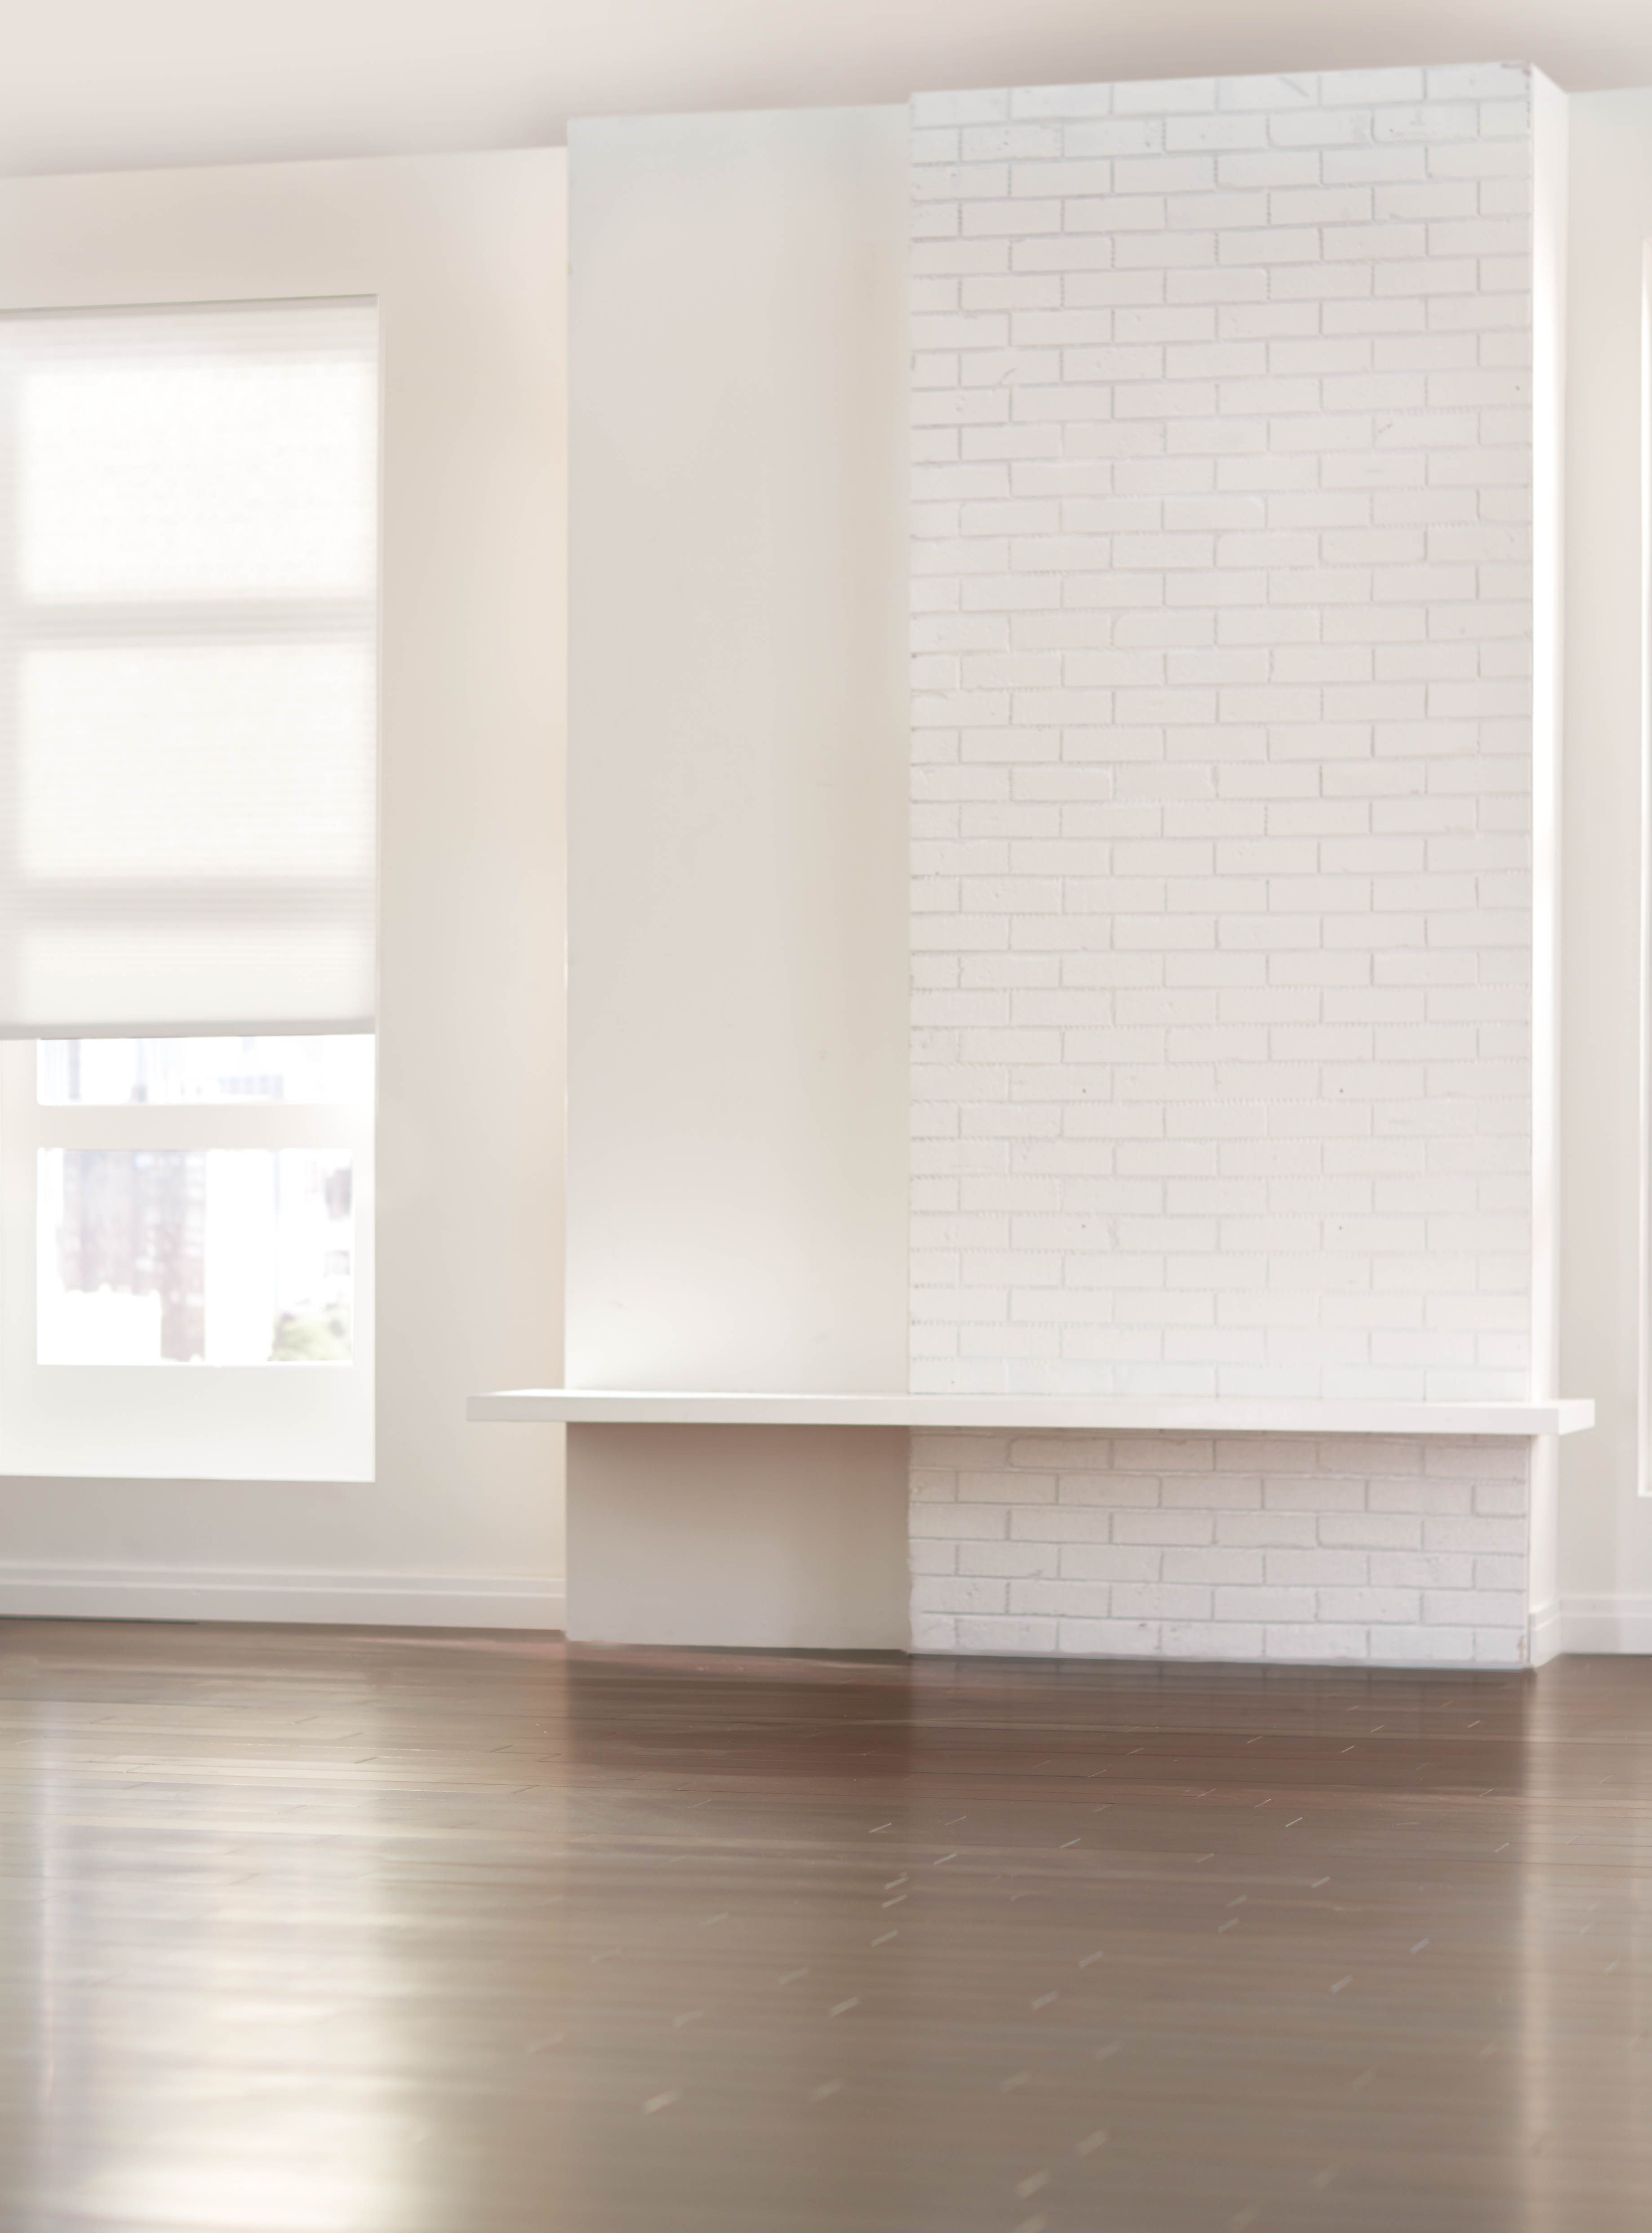 The Addition Of Home Decorators Collection By BEHR Paint And Flooring From  The Home Depot® Helps Turn This Room Into A Beautiful Blank Canvas.